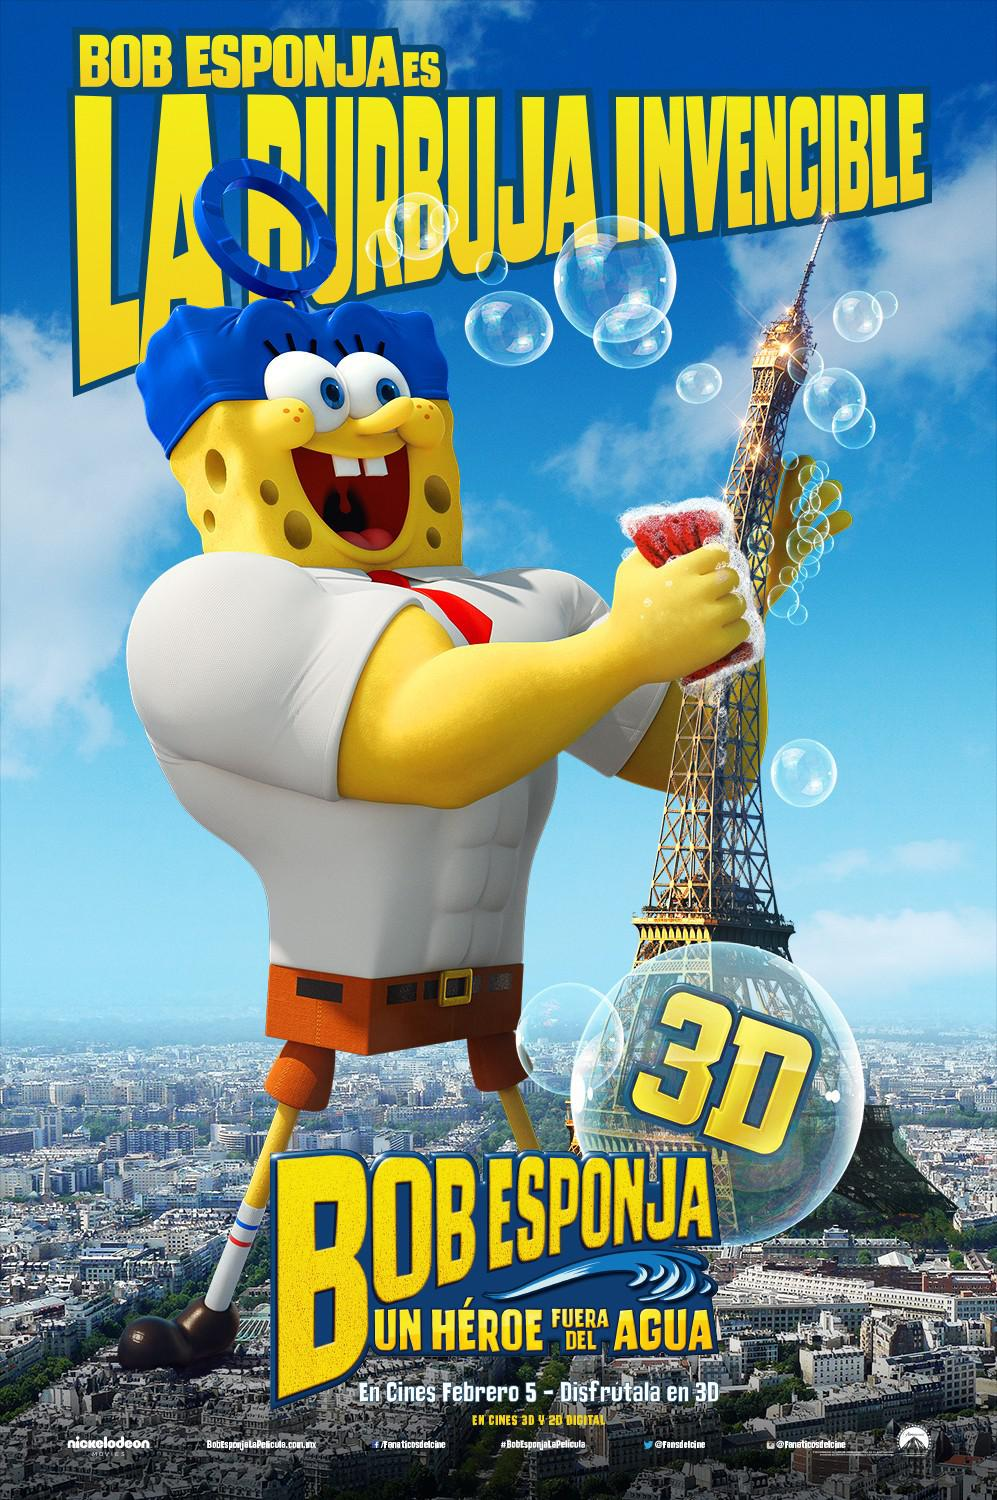 Spongebob Squarepants - Sponge out of Water - poster - Bob Esponja es La Burbuja Invencible